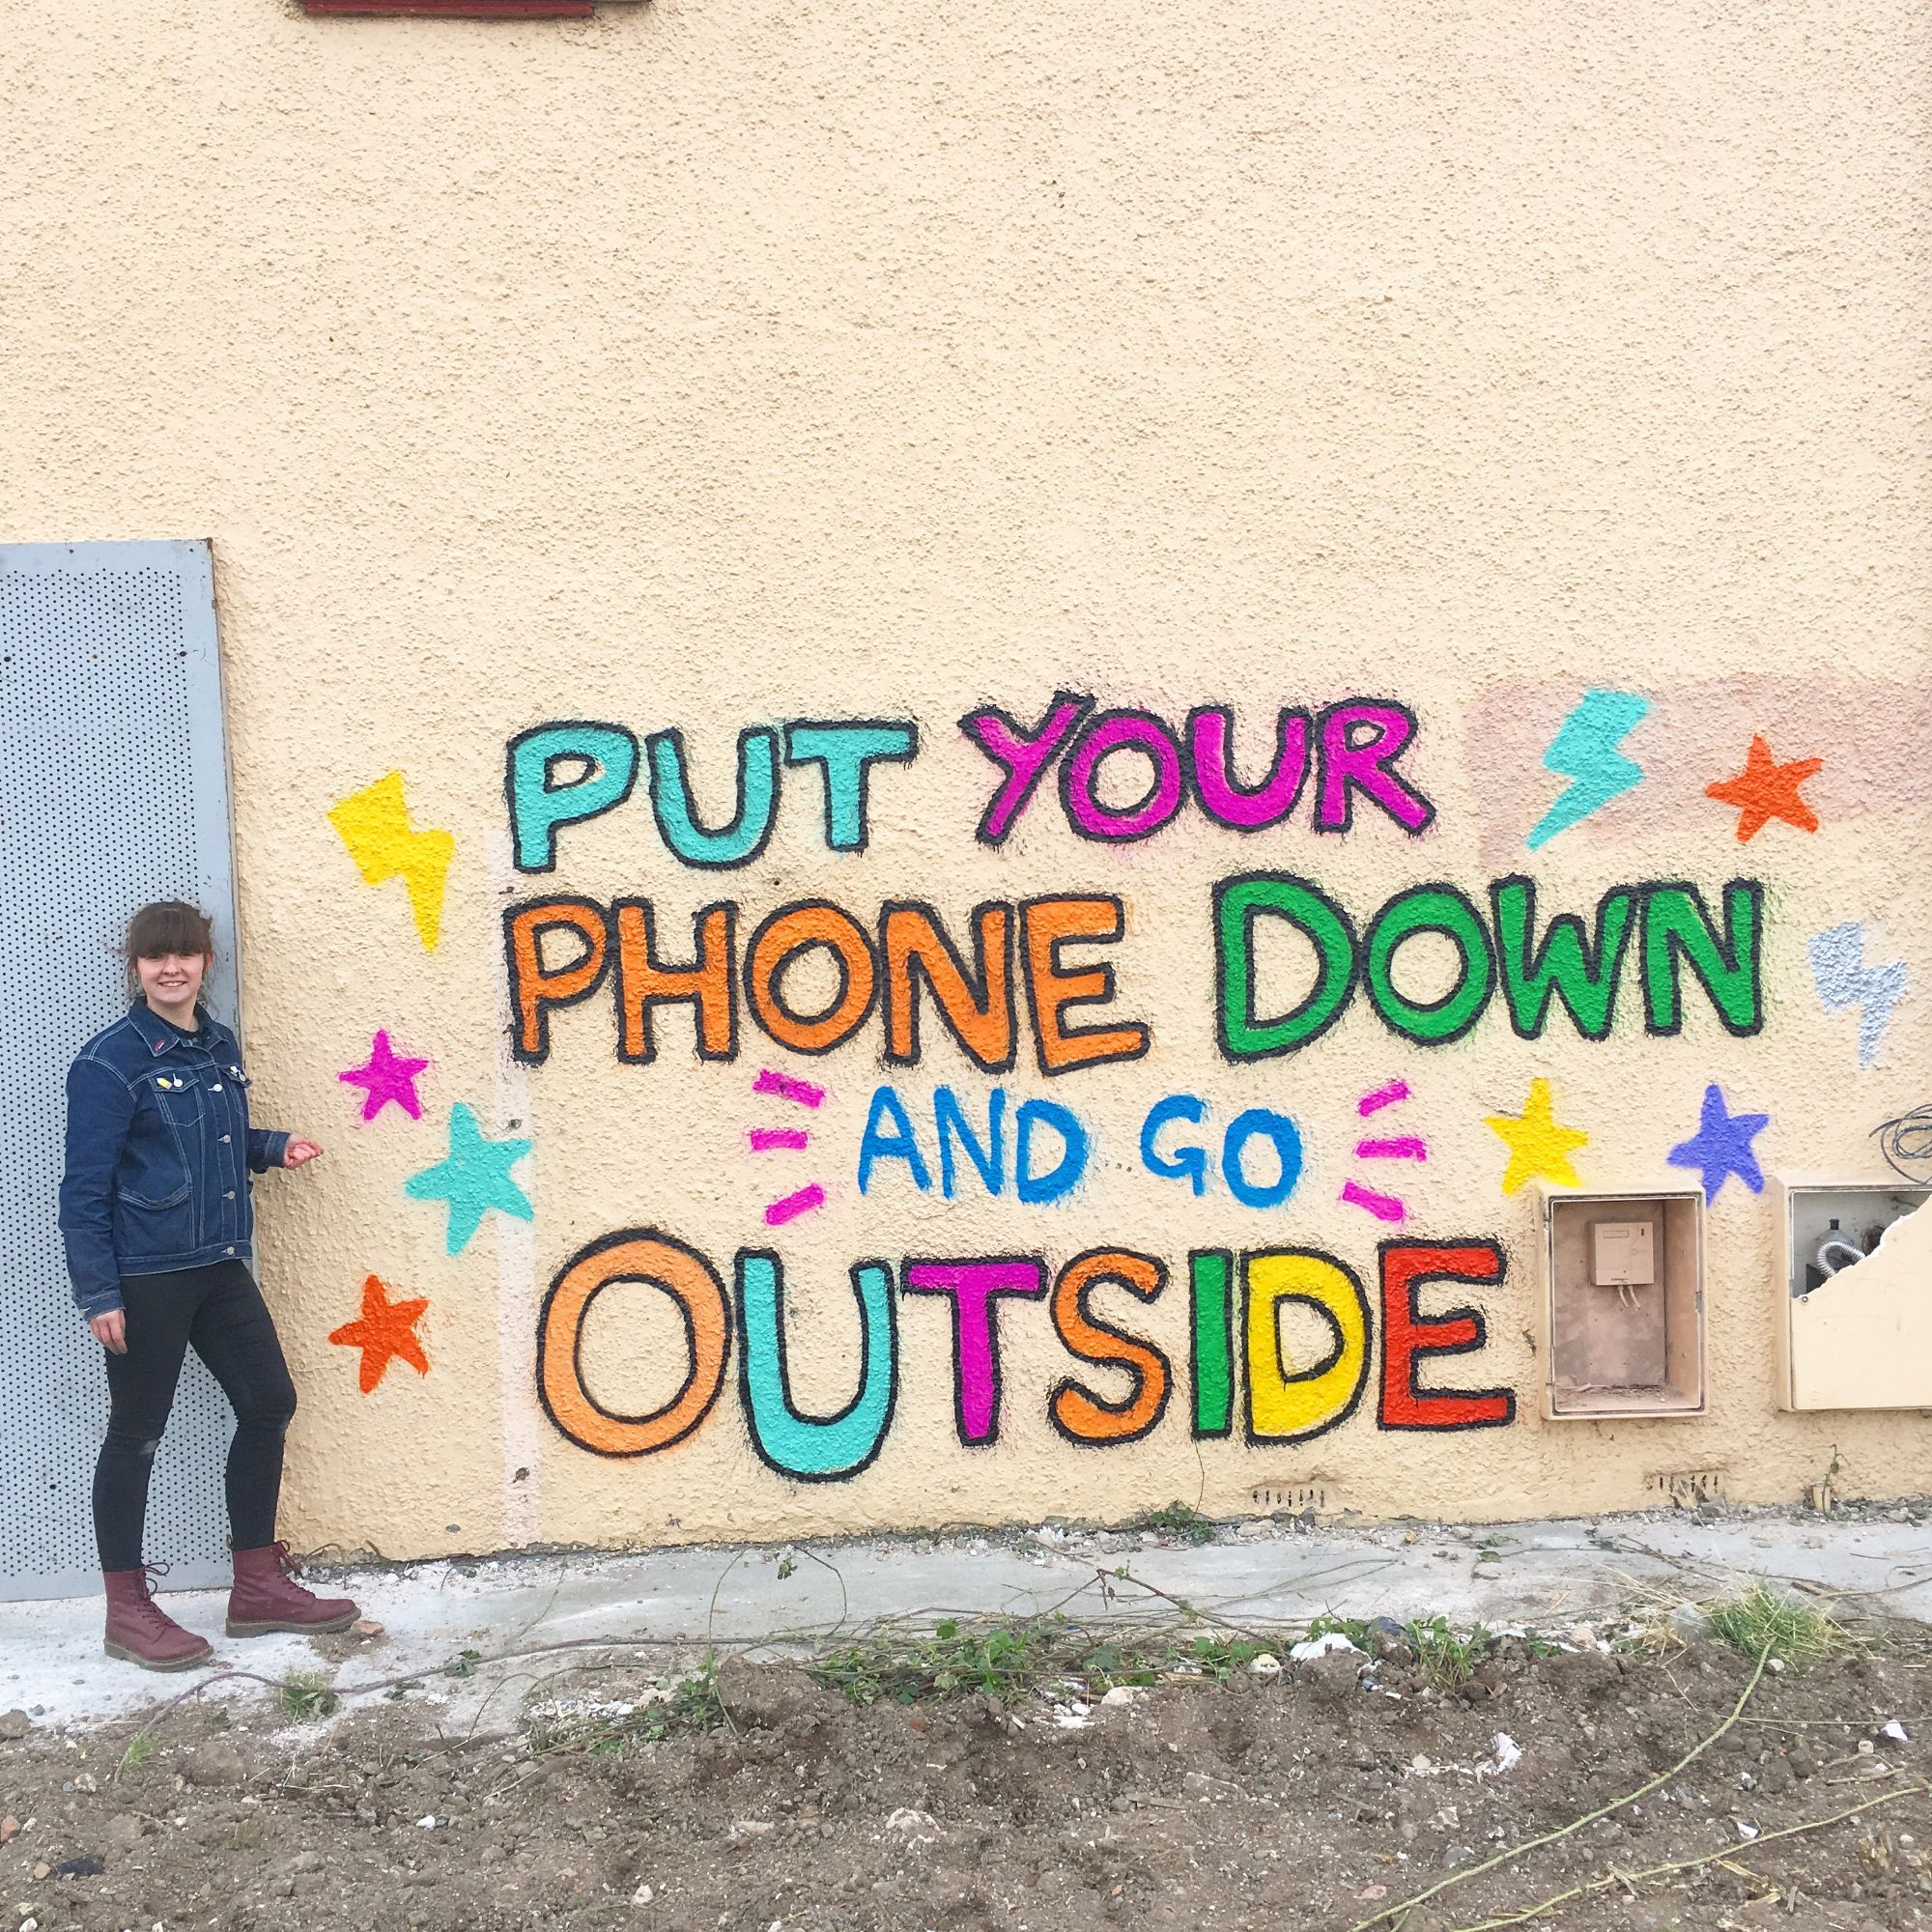 Painted graffiti on the side of a derelict house reading 'Put your phone down and Go Outside'